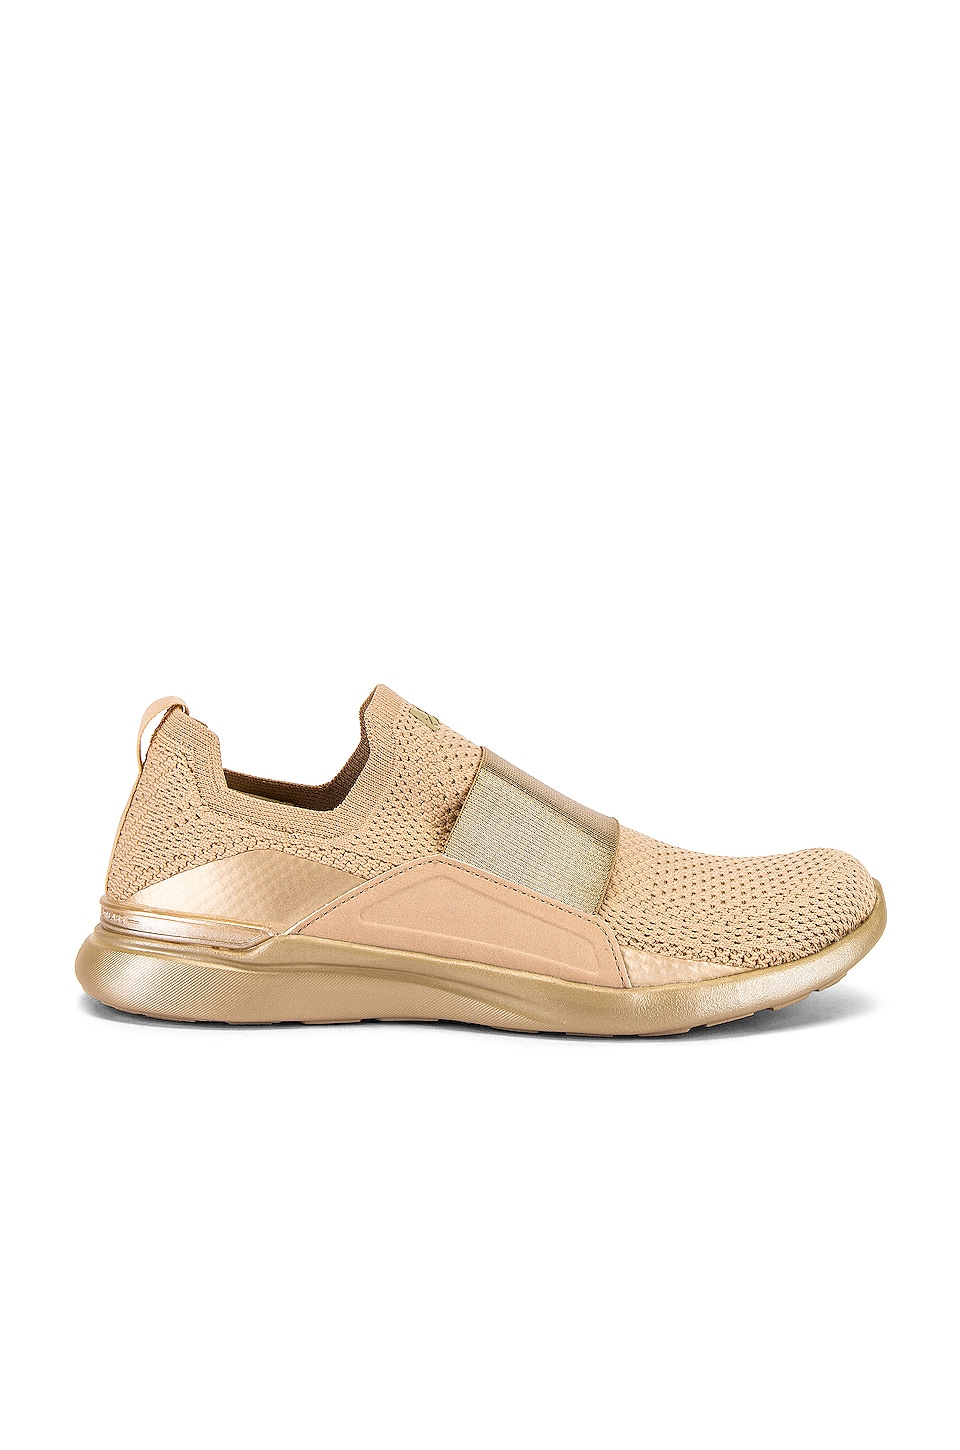 APL: Athletic Propulsion Labs TechLoom Bliss Sneaker in Champagne